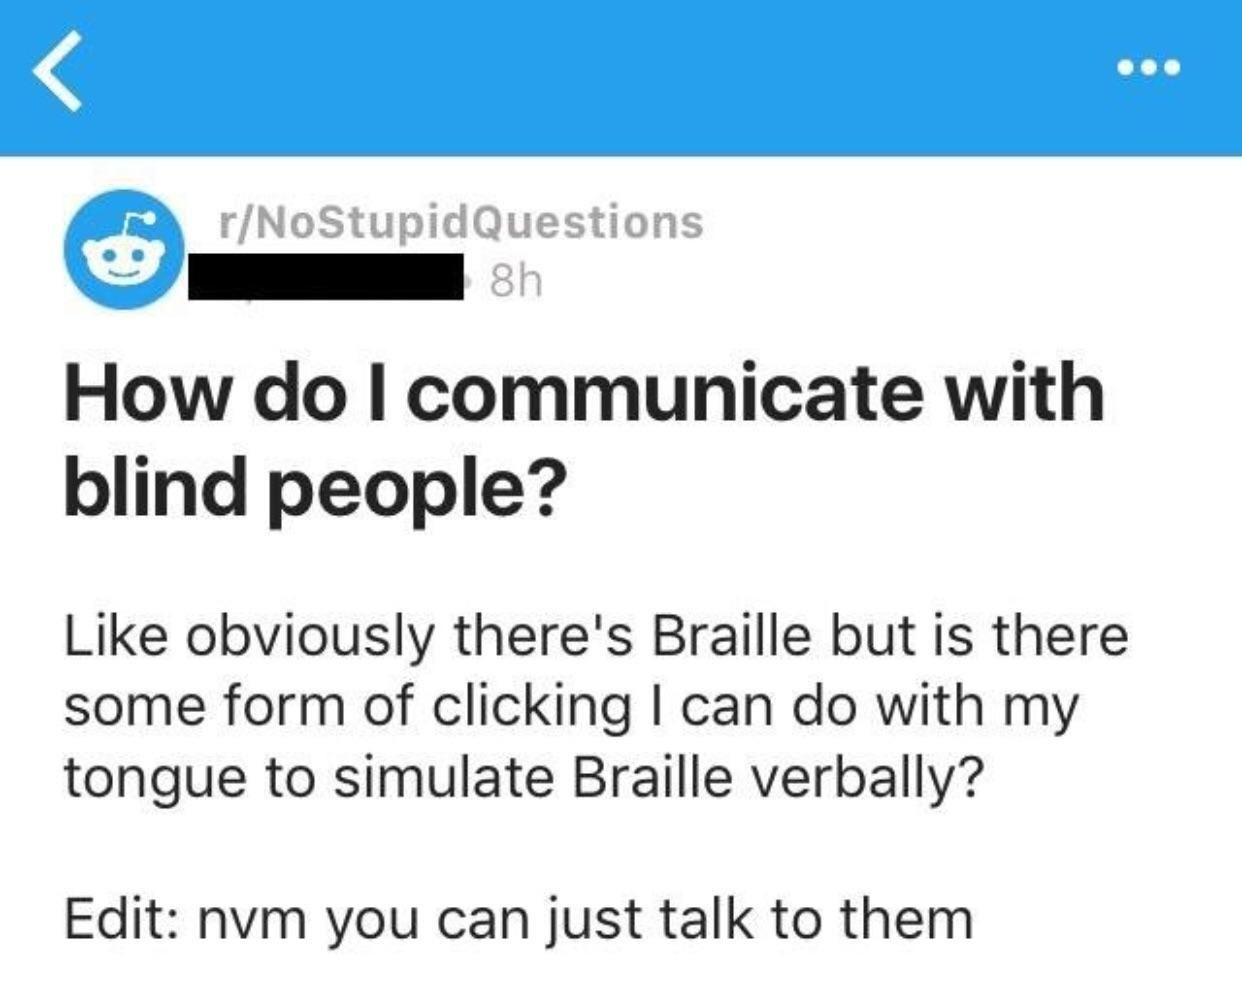 person asking how to communicate with blind people